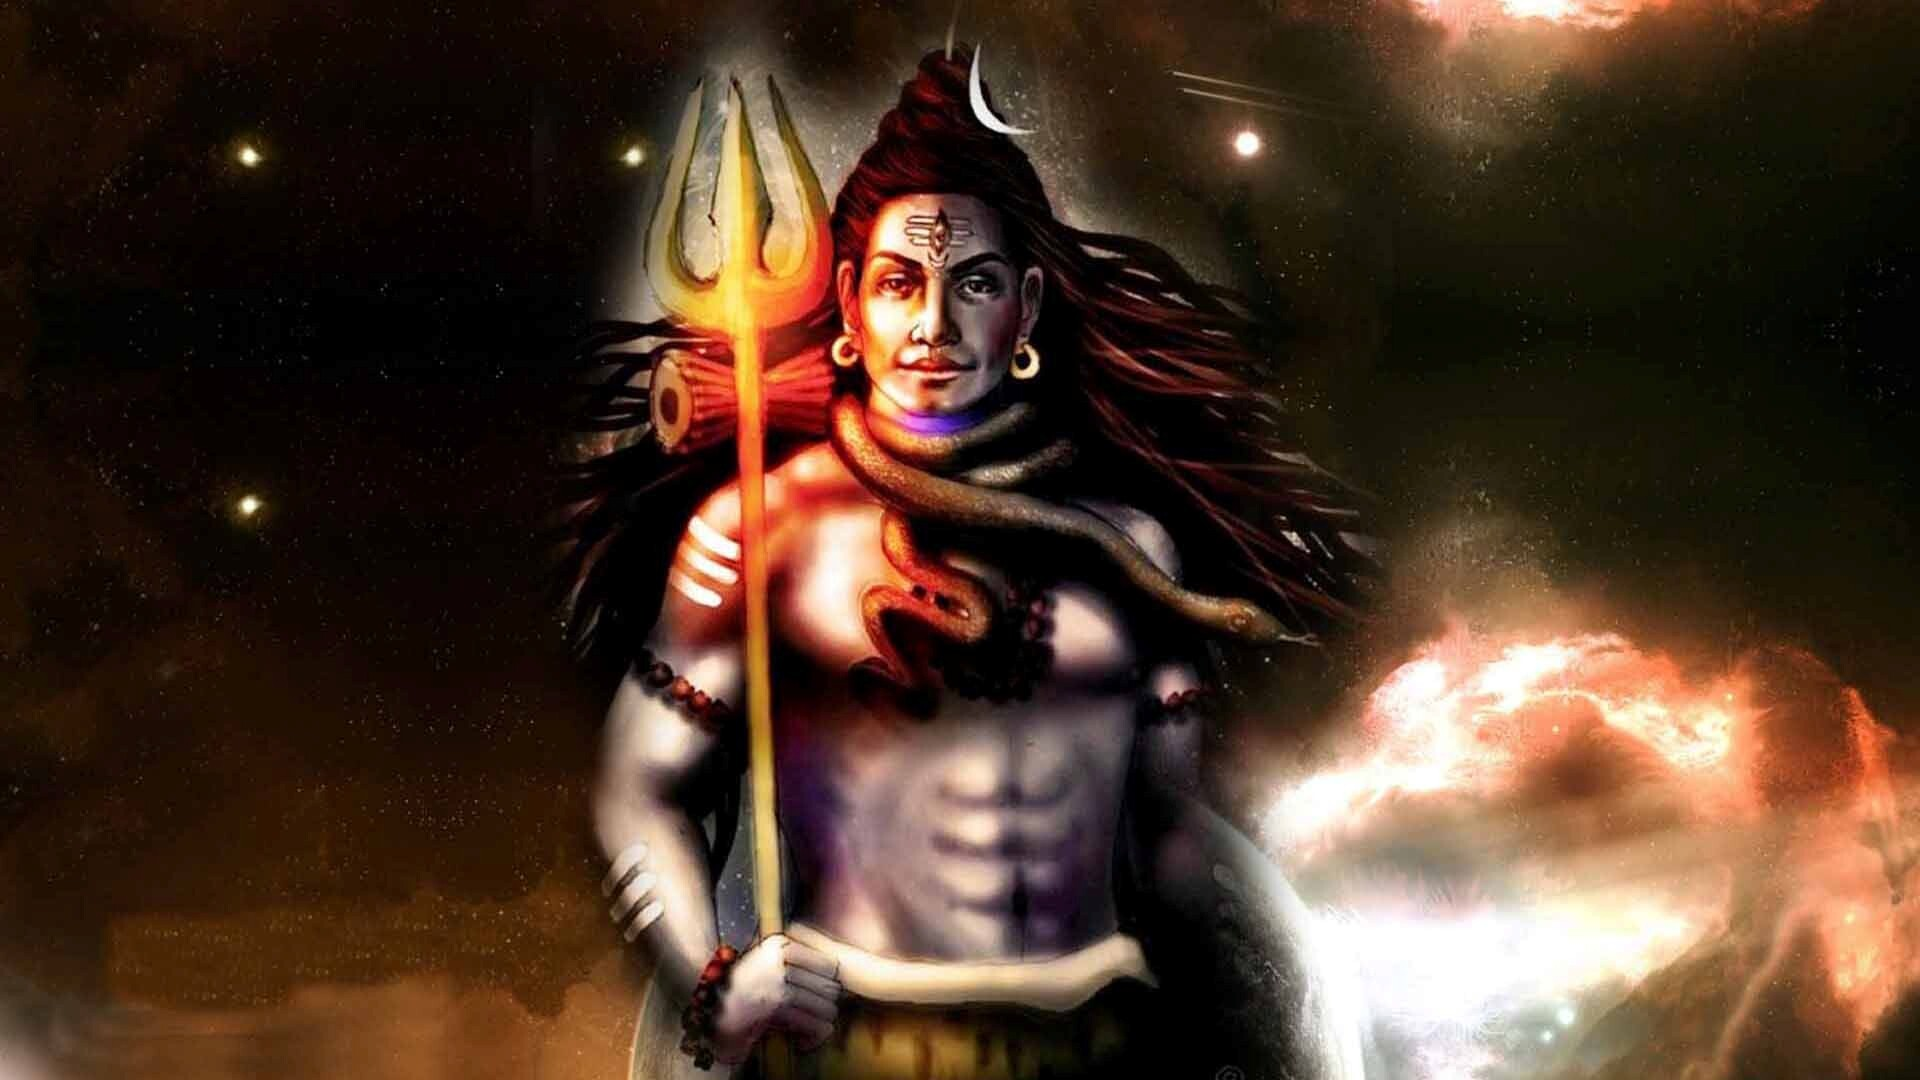 God Shiva Wallpaper Hd Wallpapers